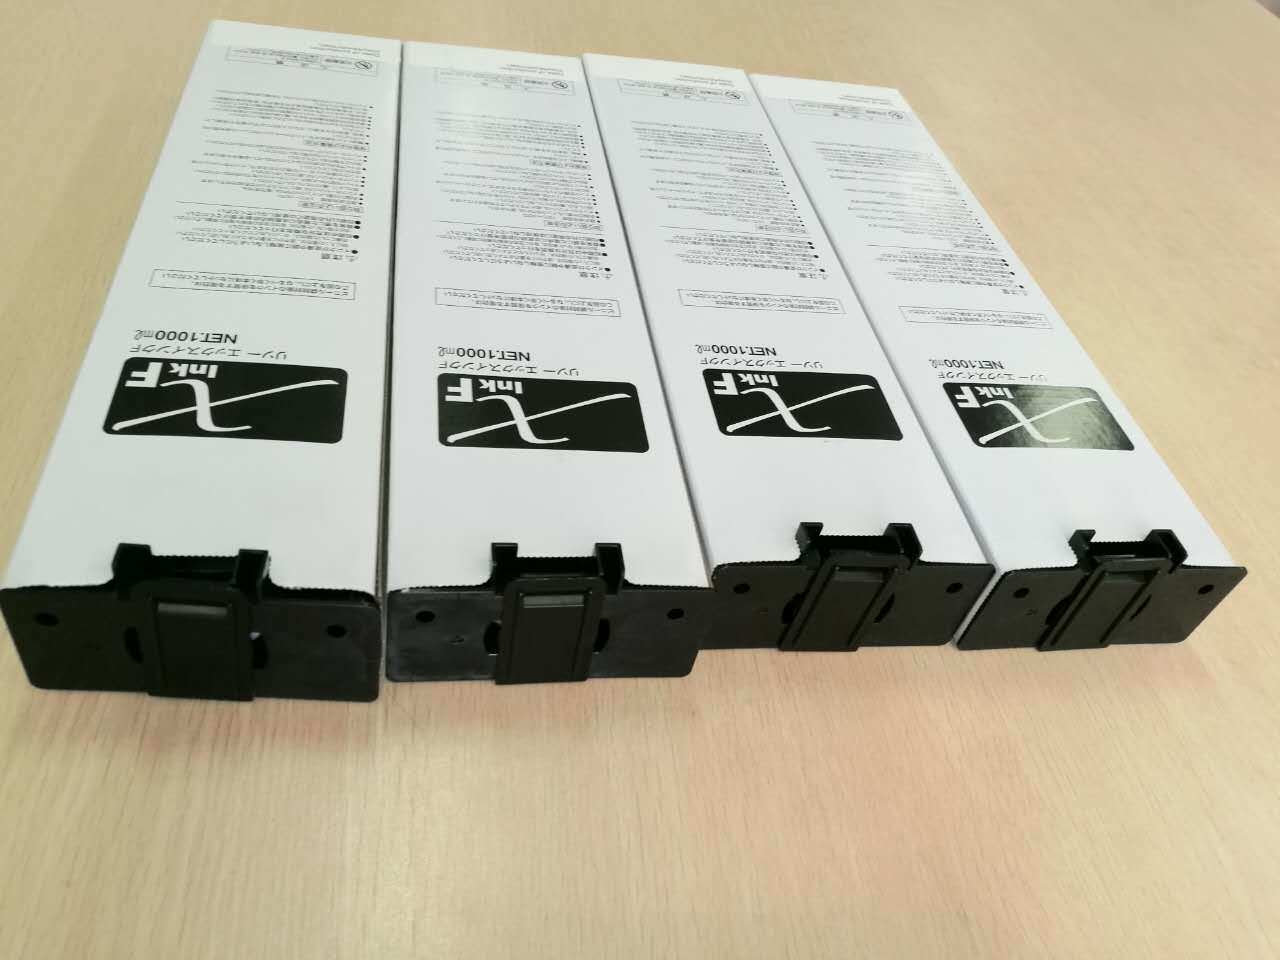 Compatible Comcolor Inkjet Cartridge 7050 9050 3050 3150 Hc5500 with Chip